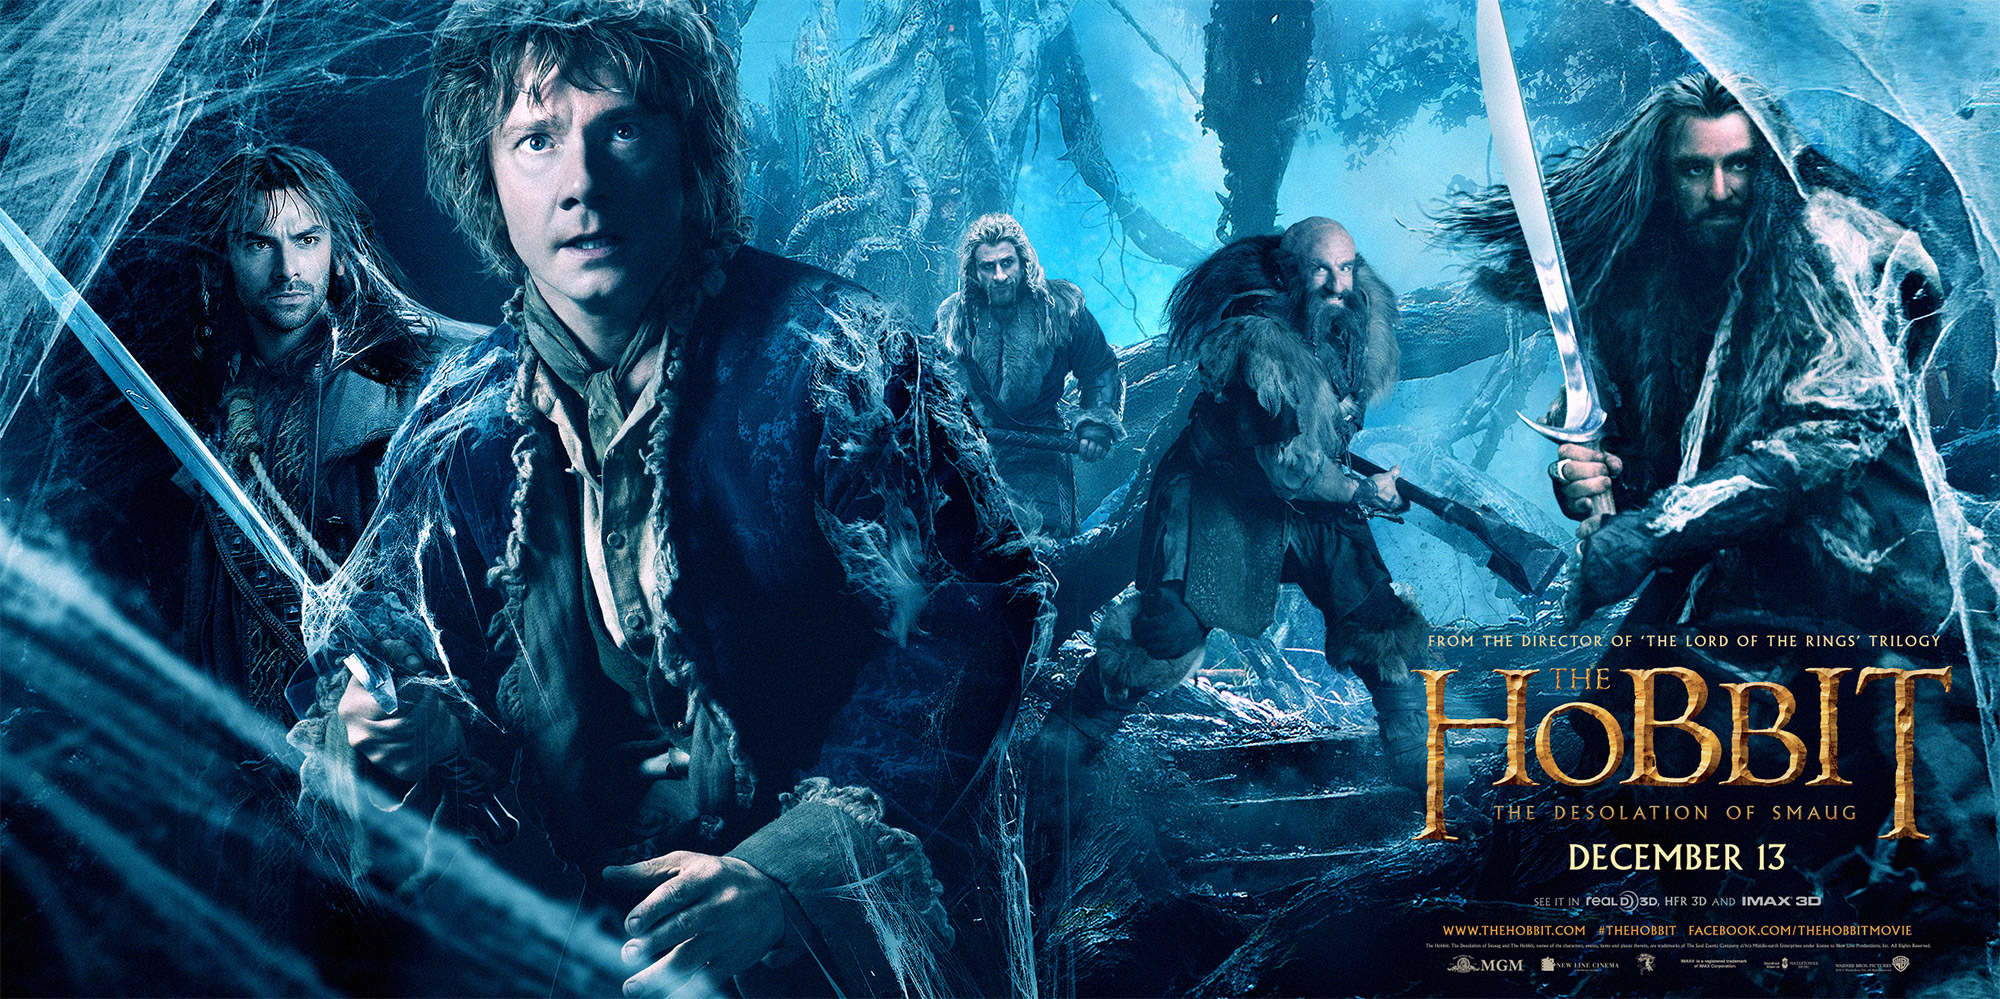 The Hobbit: The Deso?lation of Smaug